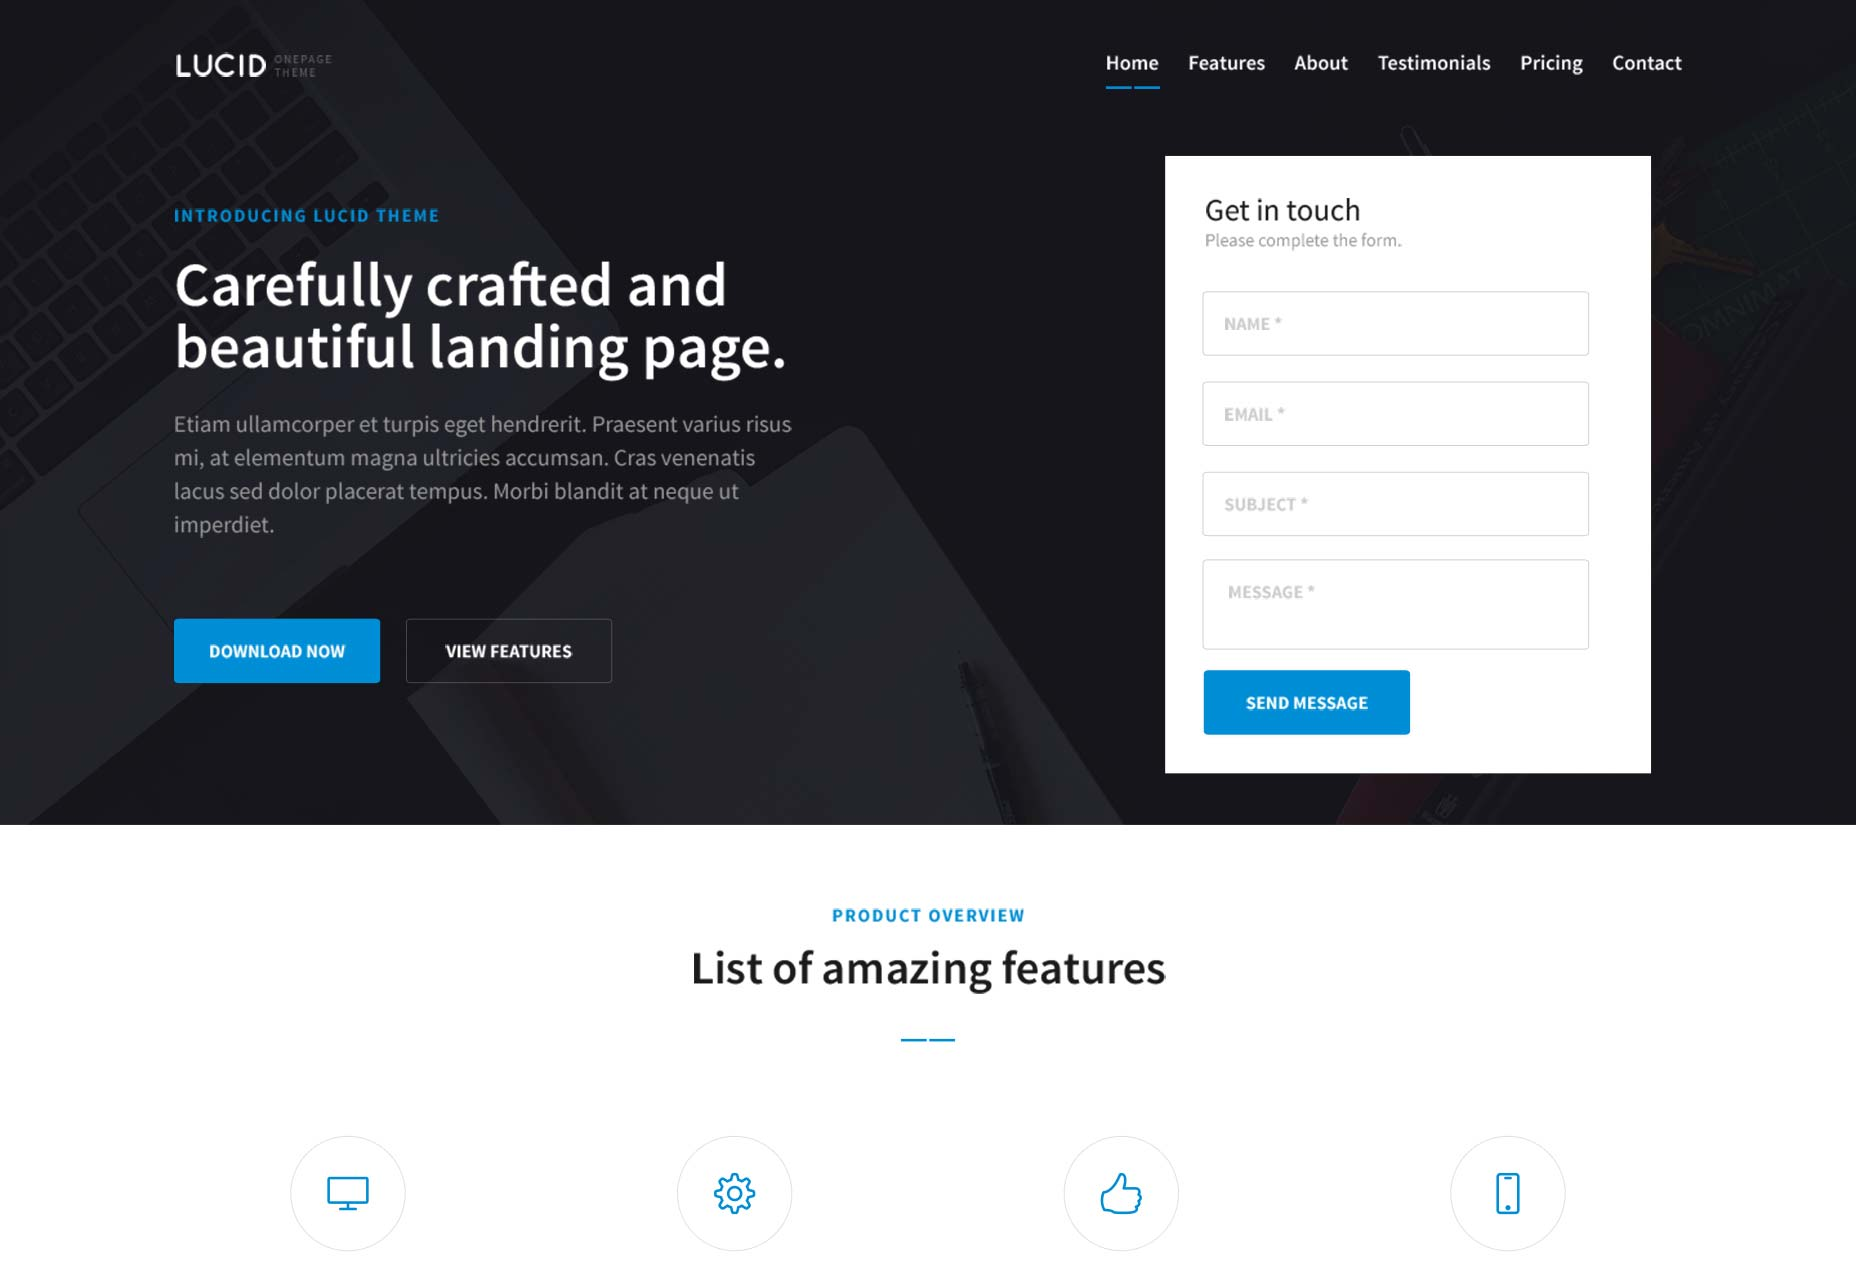 Free download: Lucid one page PSD template | Webdesigner Depot